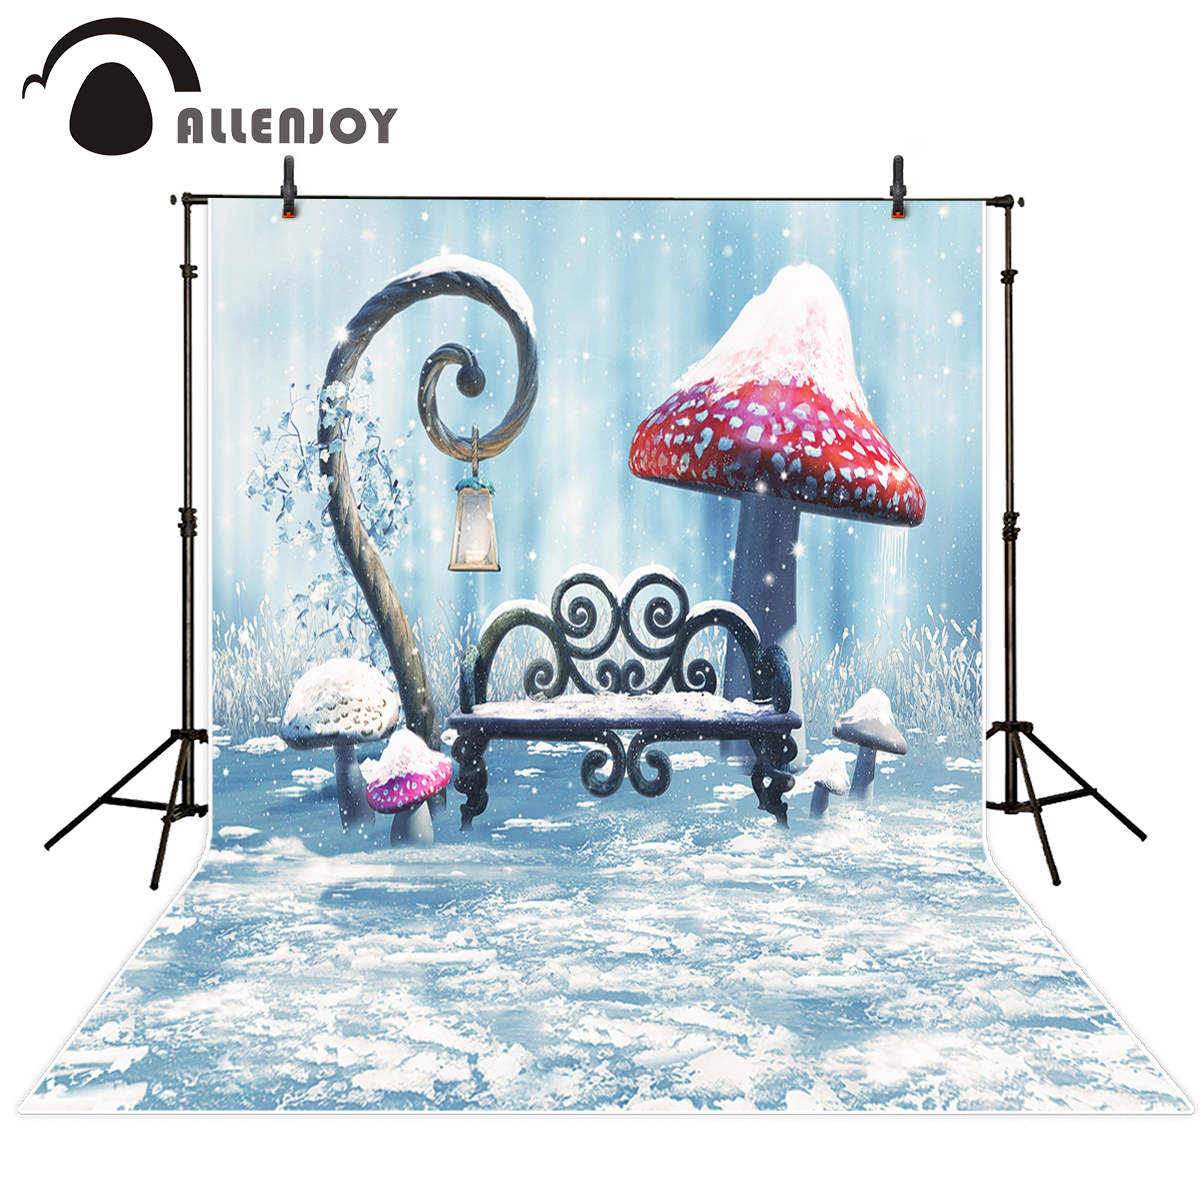 Allenjoy photographic background Fantasy fairy tale mushroom Chair snow personal customize computer printed beautiful backdrop allenjoy backdrop background wonderland